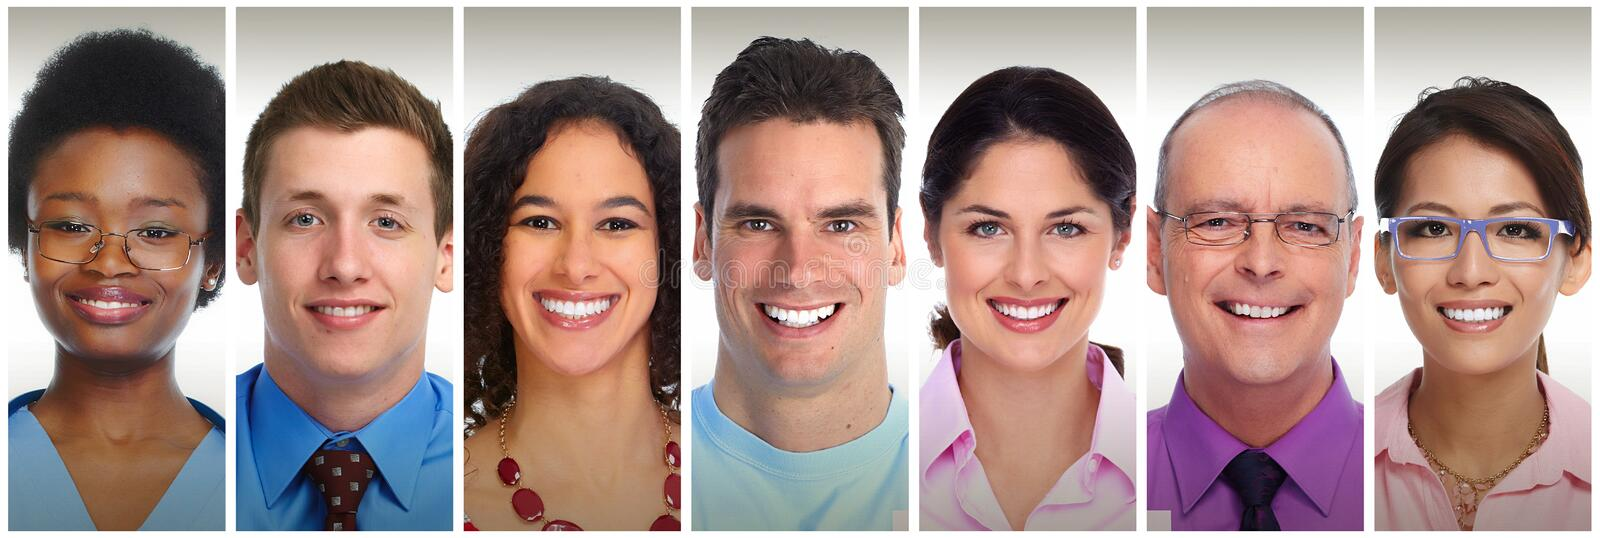 Smiling people faces stock photos